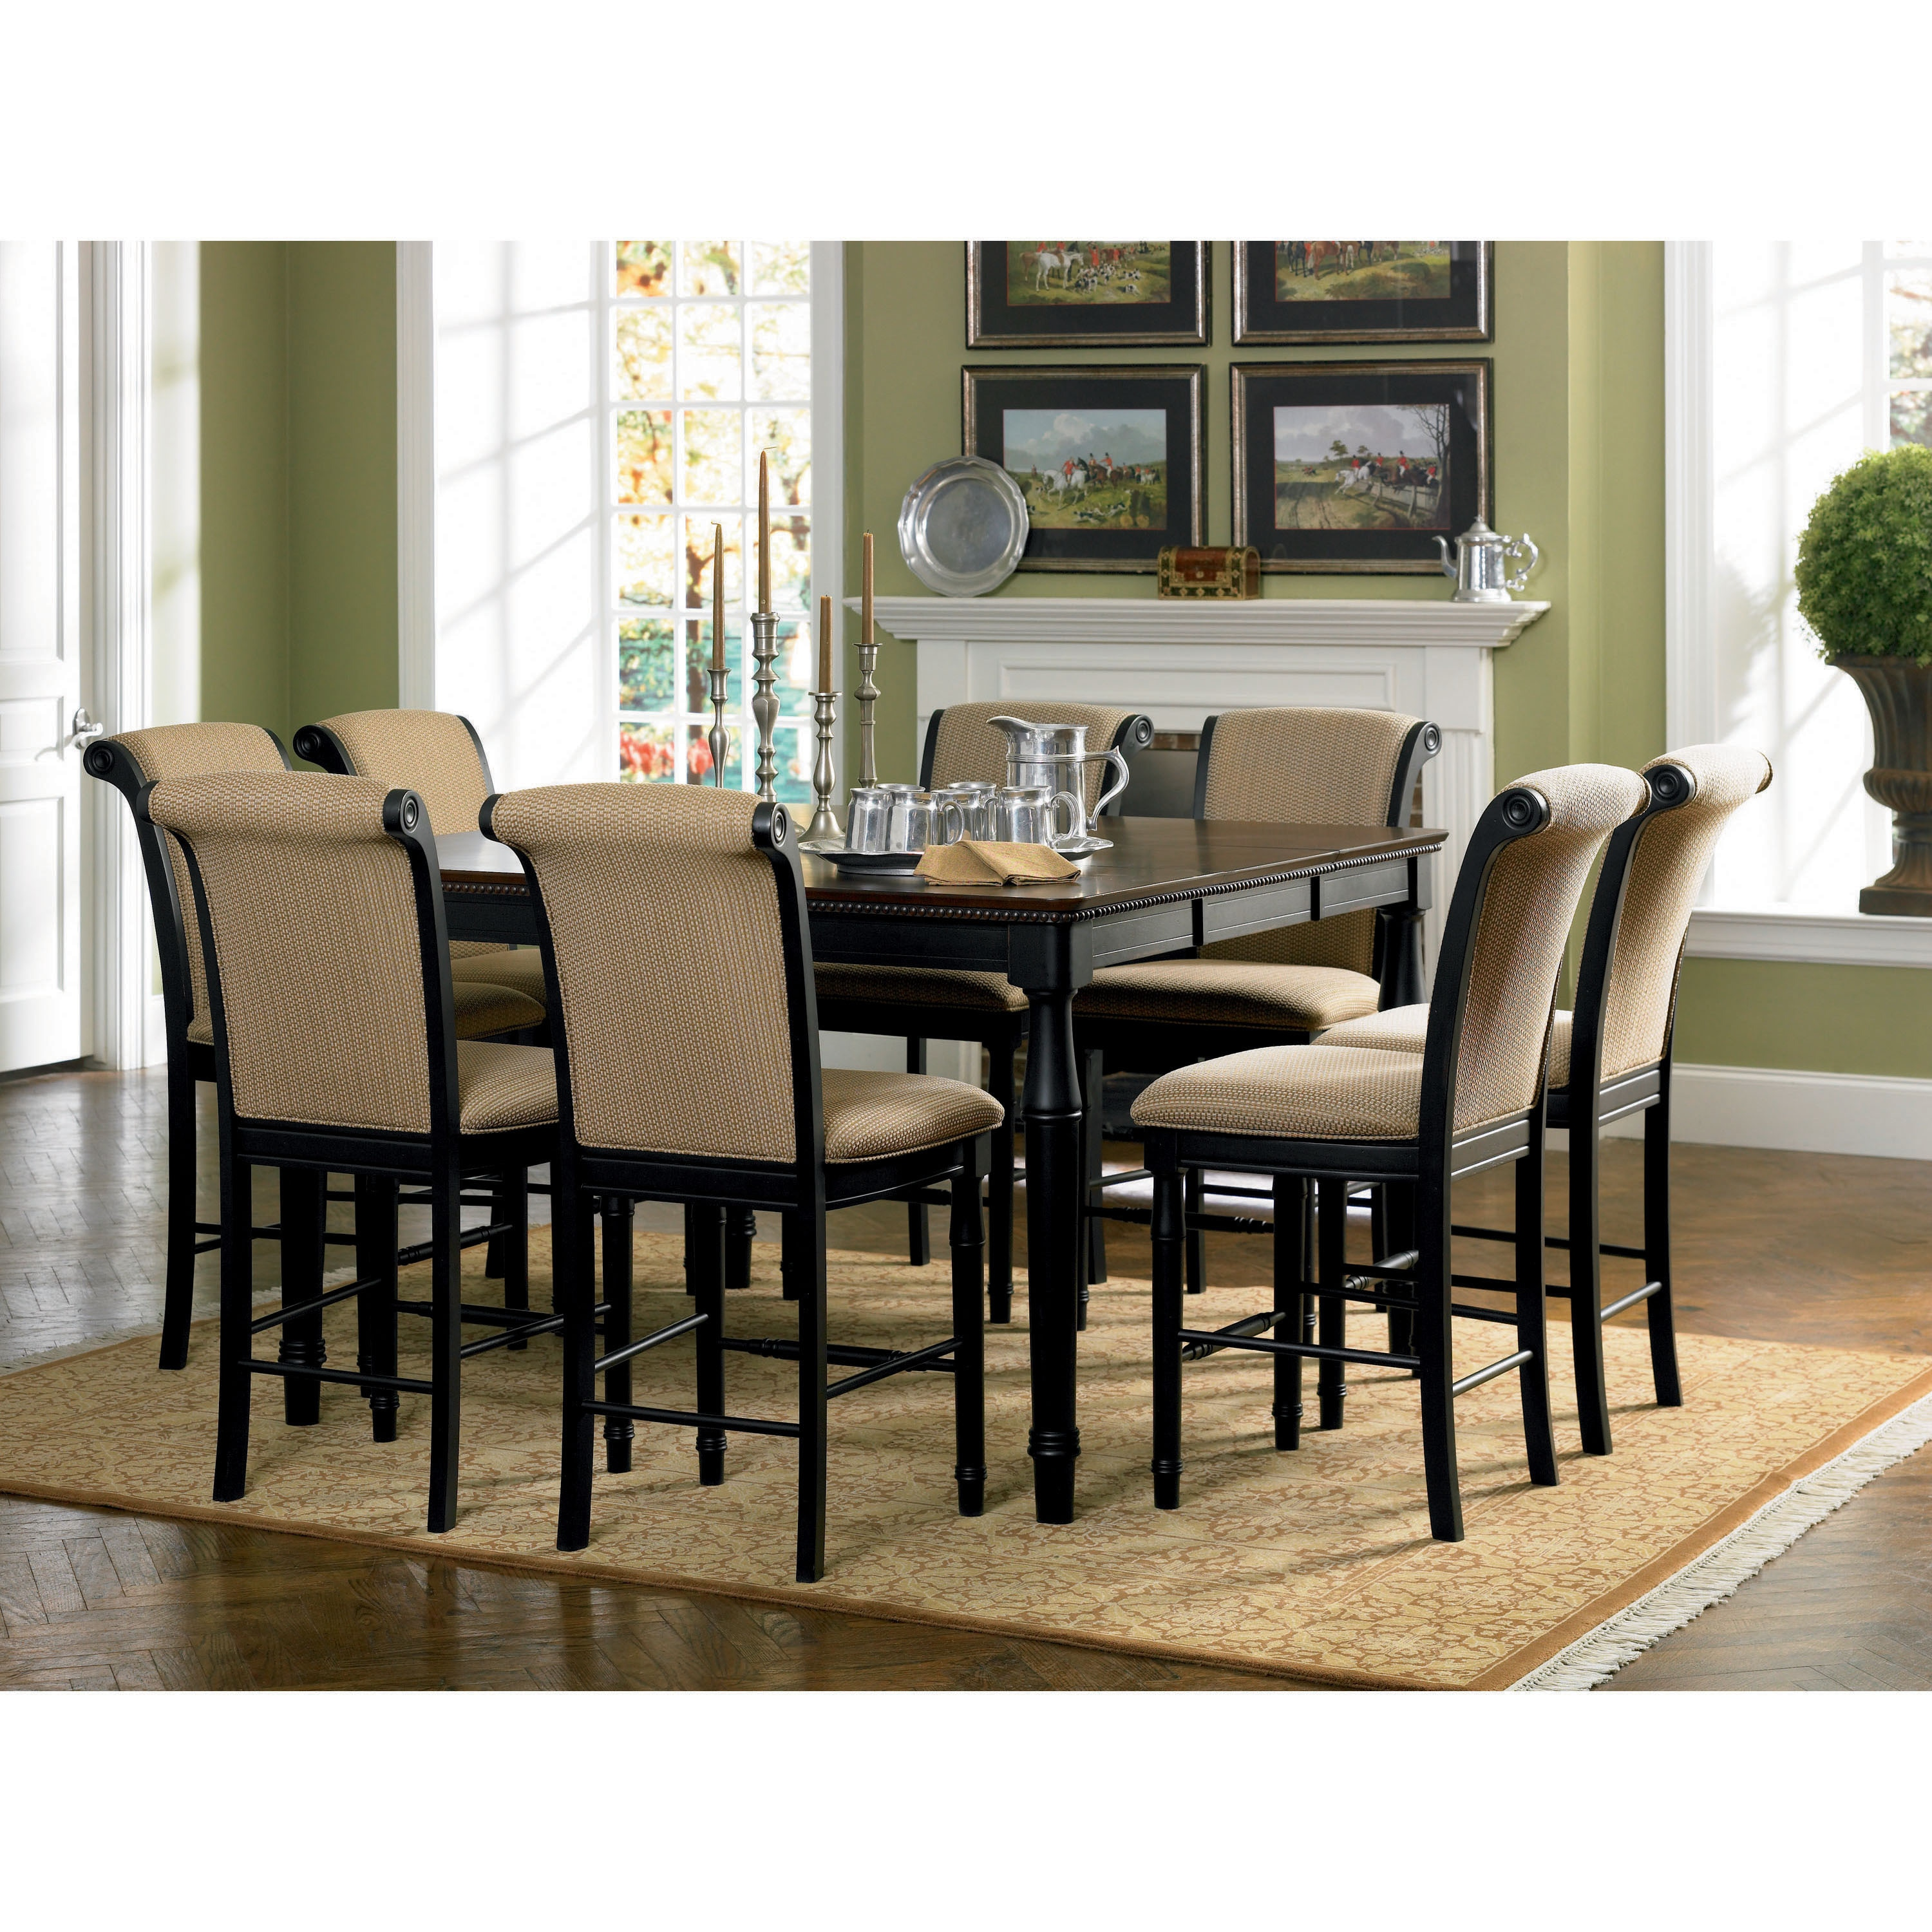 Cabrillo Counter Height Dining Table Black Overstock 9397910